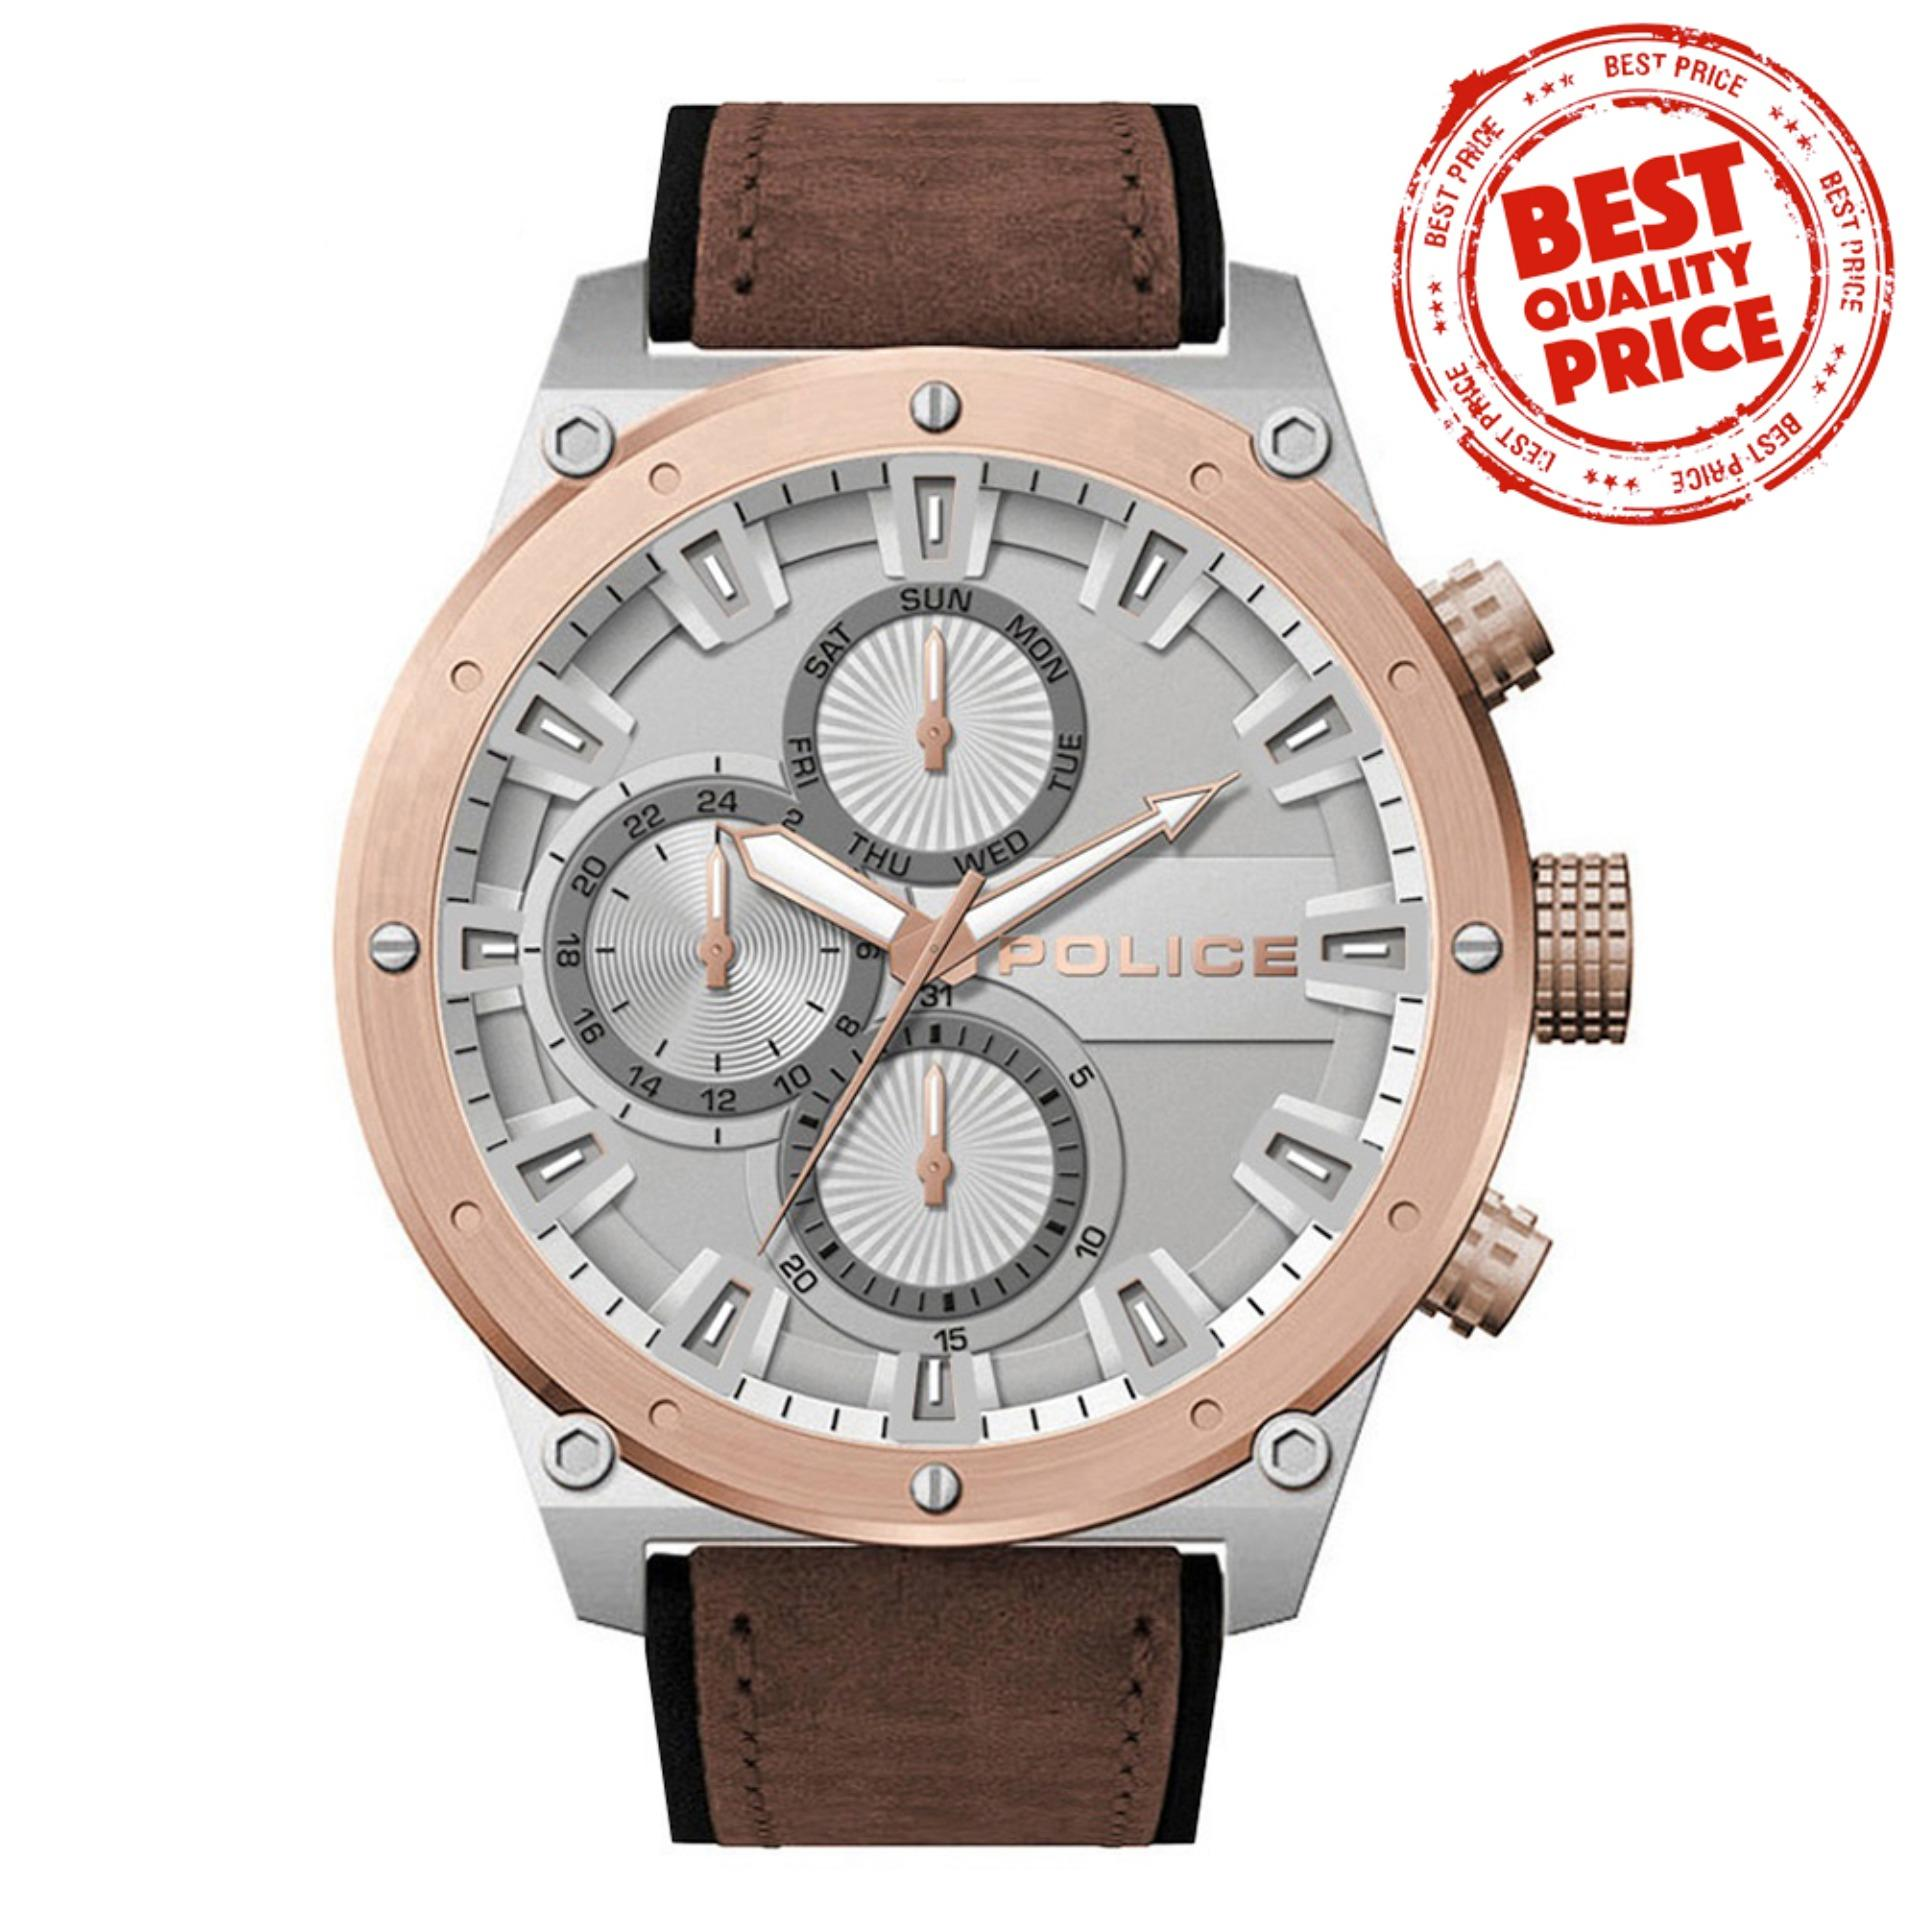 a0bf65d08cb Police Watches Philippines - Police Wristwatches for sale - prices ...